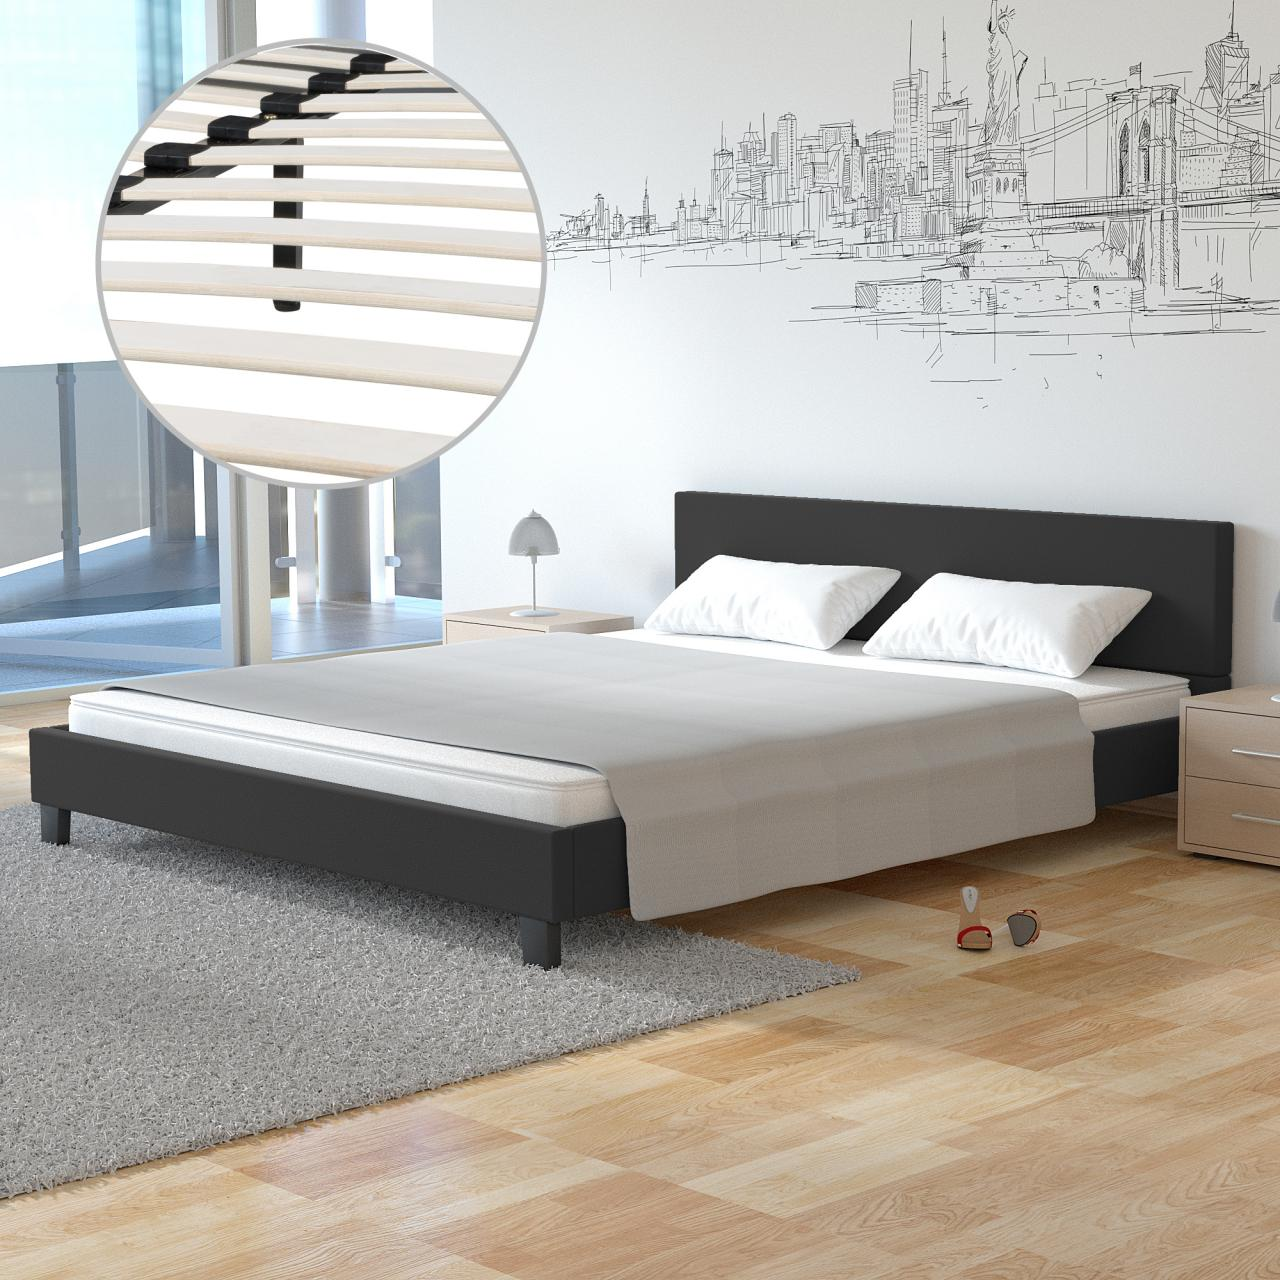 polsterbett doppelbett bettgestell bettrahmen. Black Bedroom Furniture Sets. Home Design Ideas